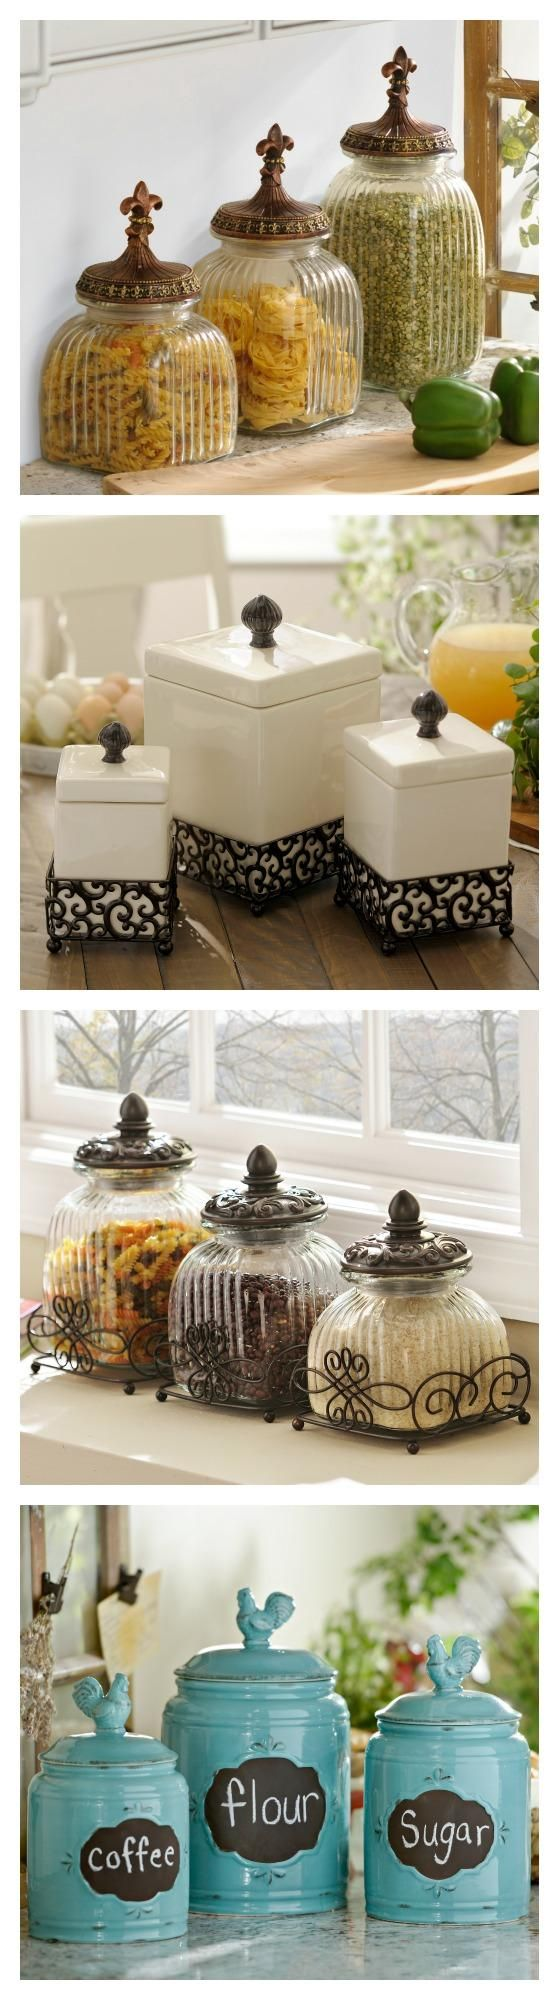 Tuscan old world drake design medium berry kitchen canisters set of 3 - Clean Up Your Kitchen Counters With Kirkland S Canister Sets They Are Available In All Sizes